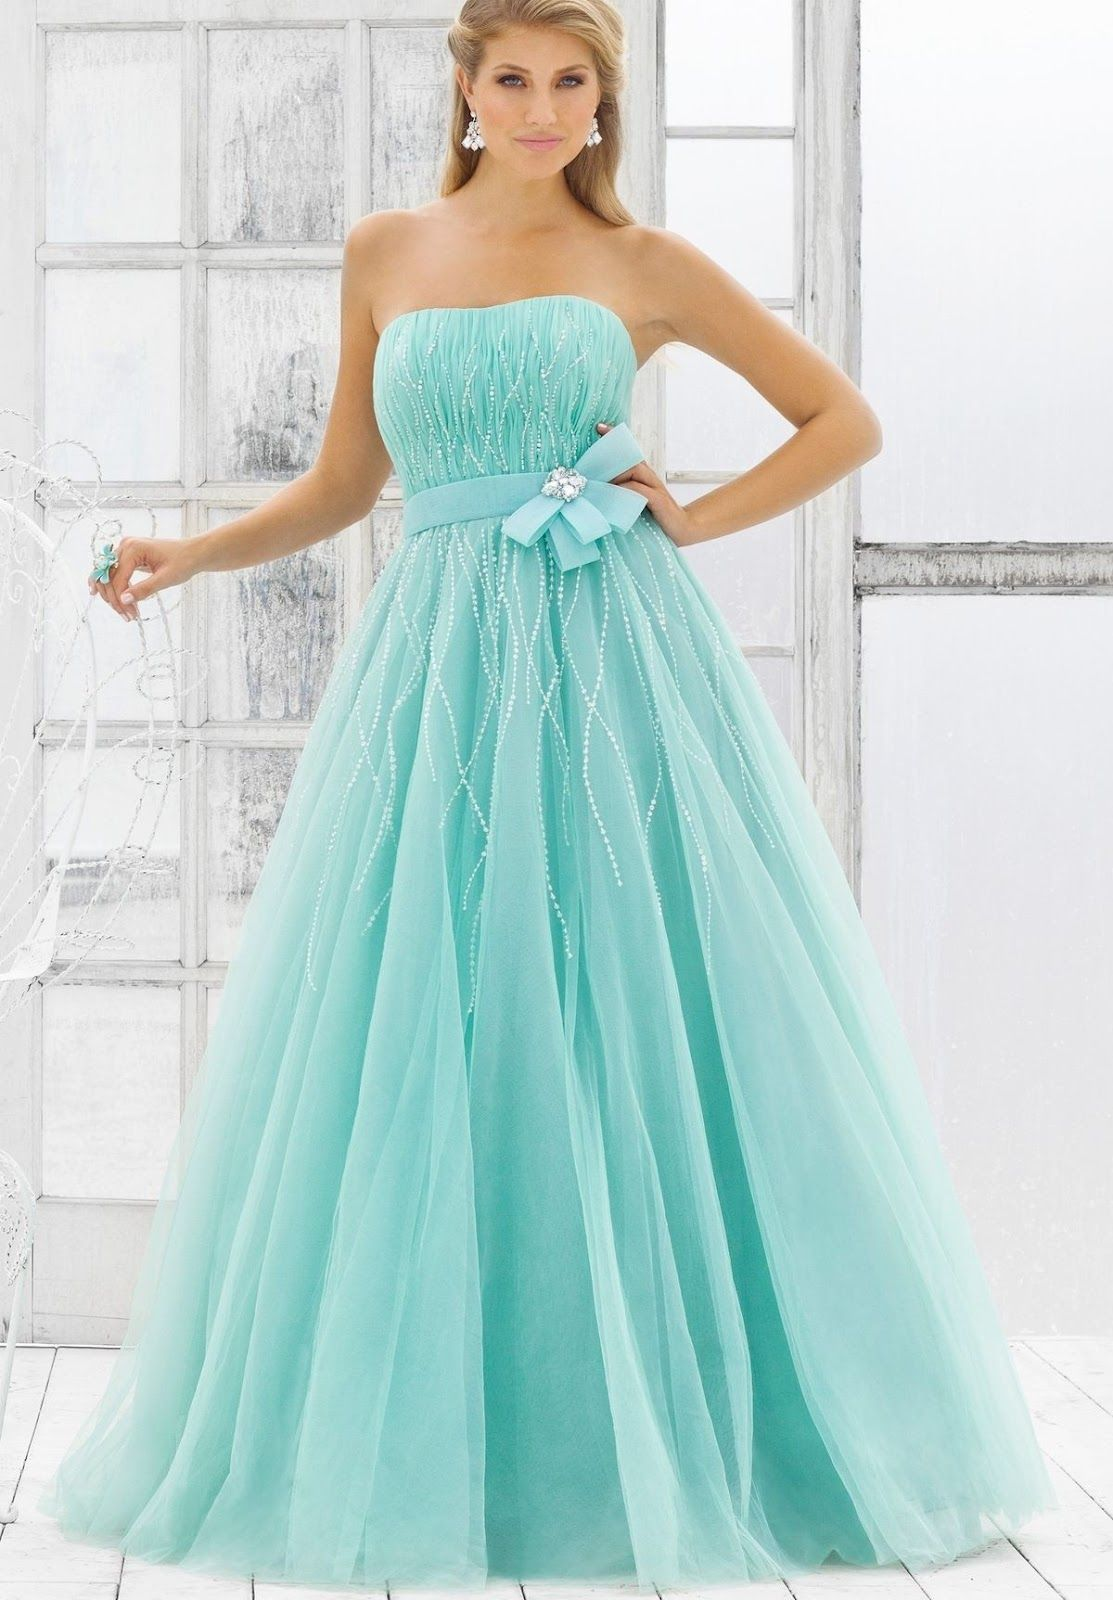 WhiteAzalea Ball Gowns: Delicate Ball Gowns Make You a Fair Lady ...